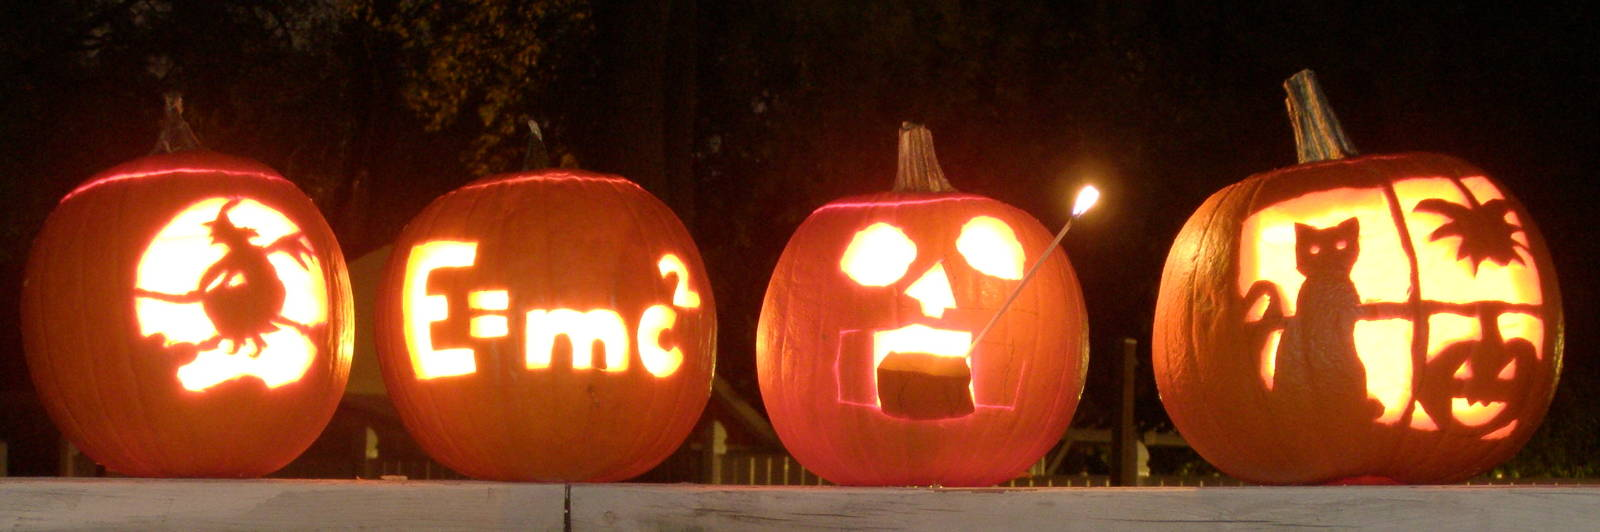 geek-pumpkins.jpg